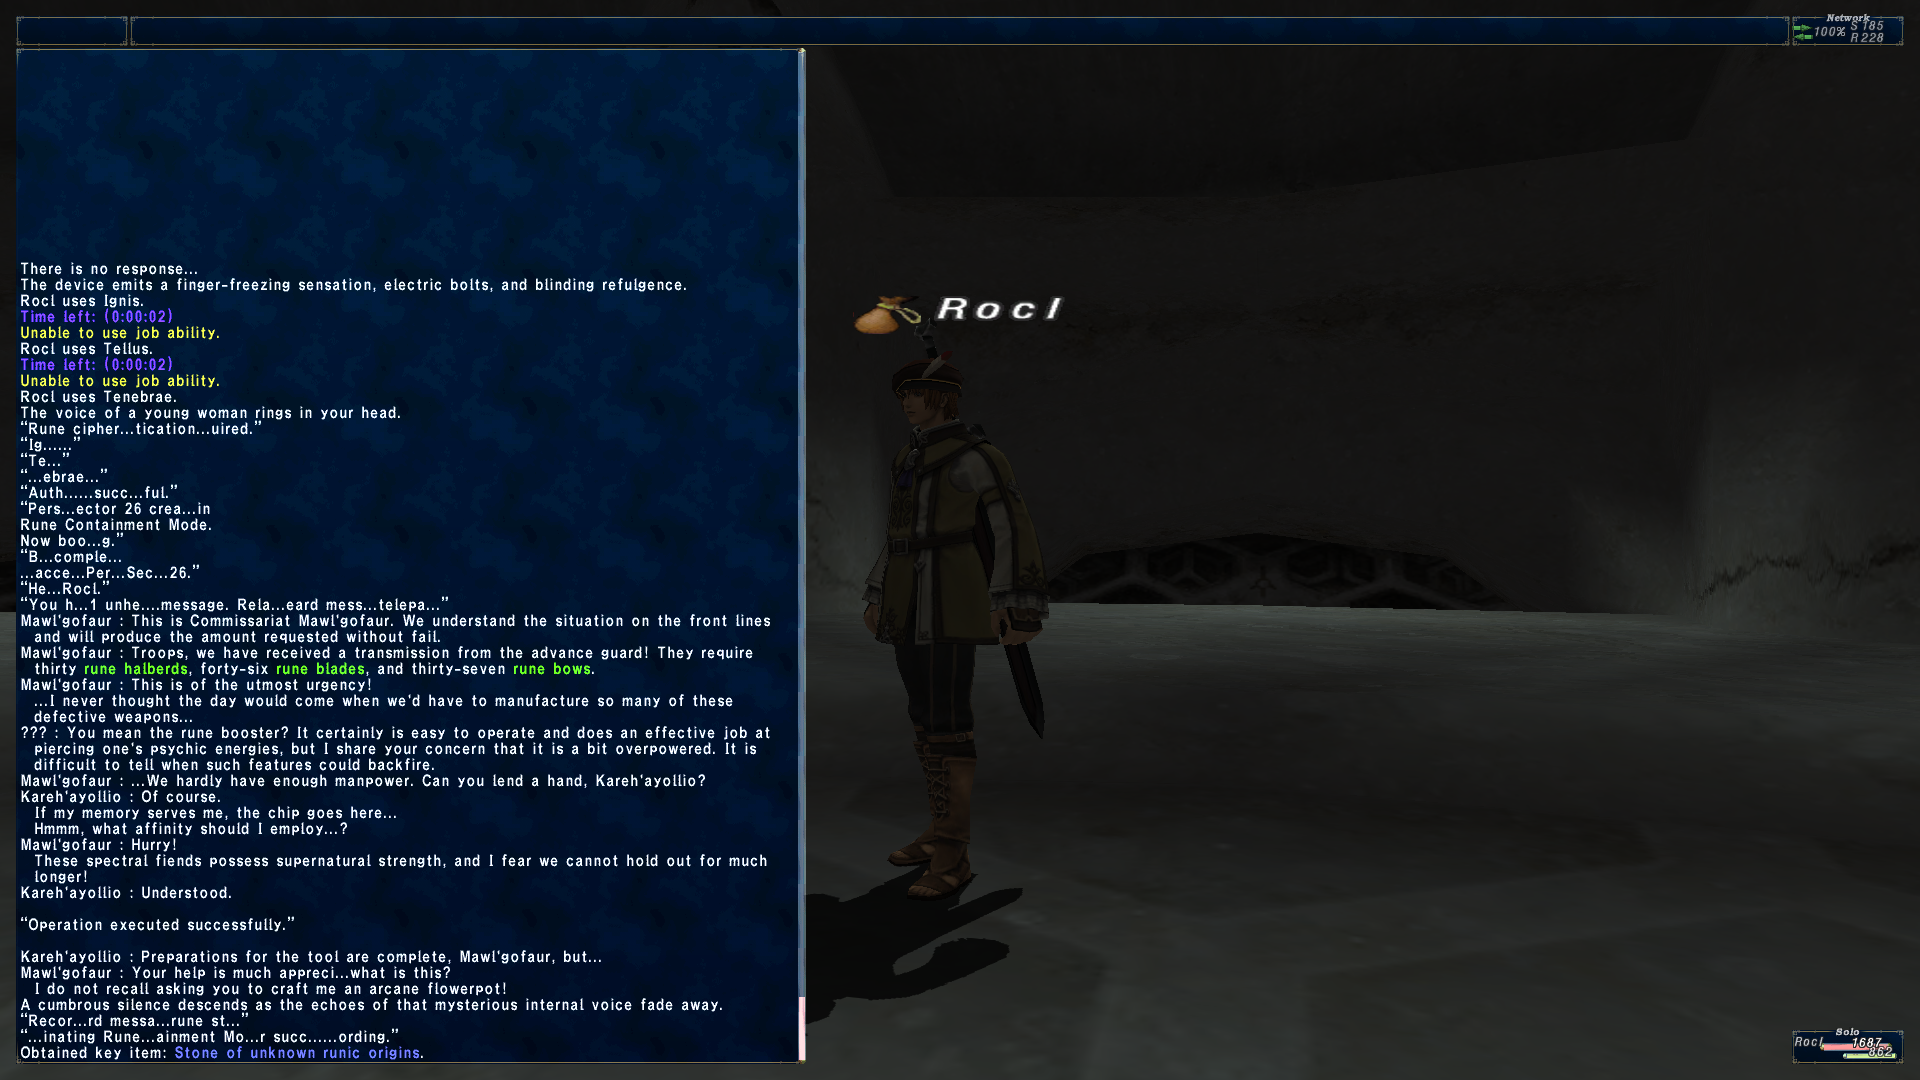 rocl ffxi then aquila that halfling says scene lines remember were tasked with care taking saying basically blame task what actually part failed those something robel-akbel without scalds change after along absolutely guarantee questline windurst unclear plot-holes issues 100 requires wondering make sense solely didnt lilisette distinctly referring because thought meant